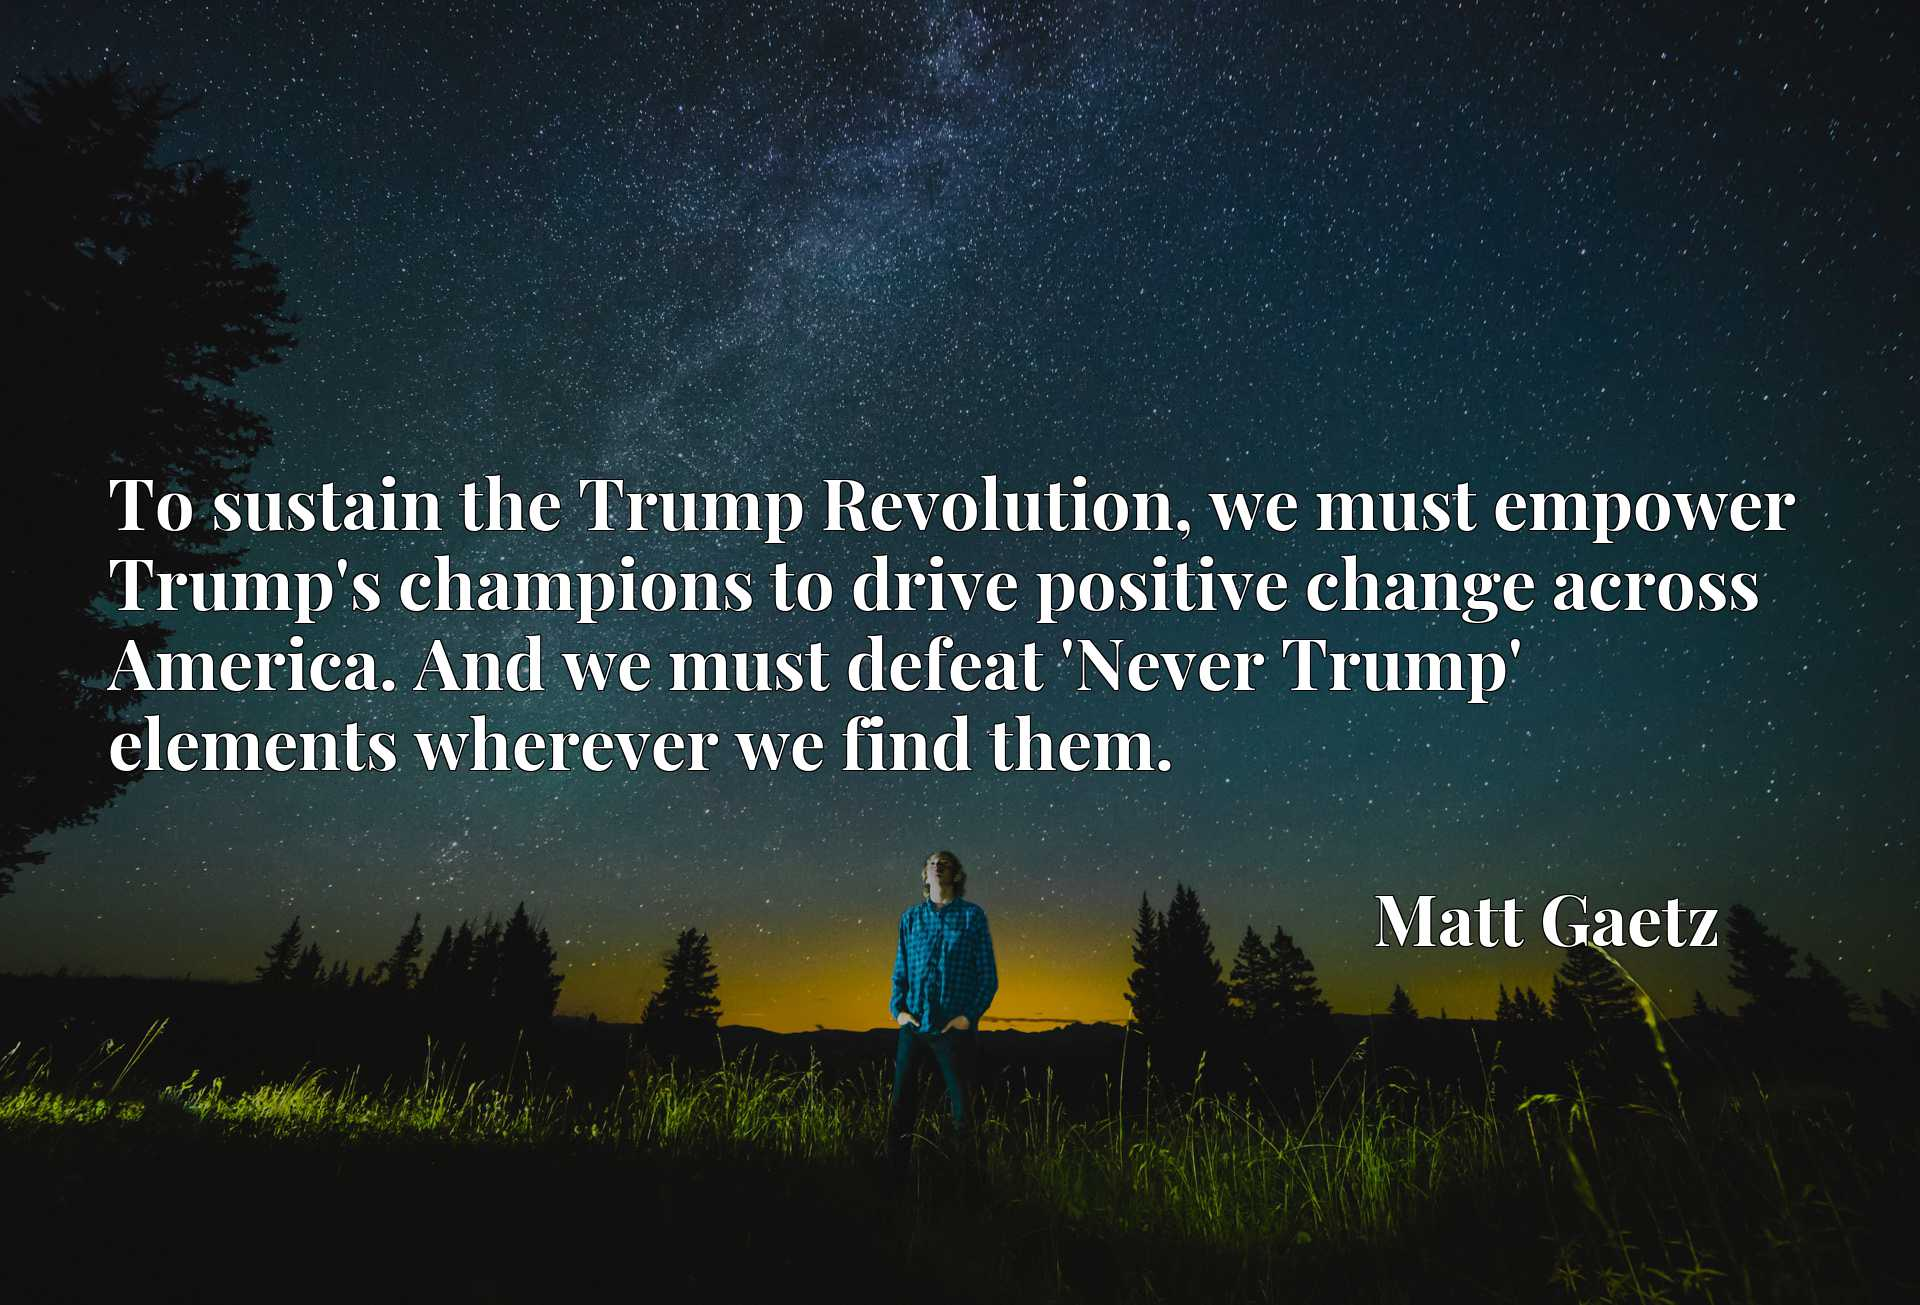 To sustain the Trump Revolution, we must empower Trump's champions to drive positive change across America. And we must defeat 'Never Trump' elements wherever we find them.